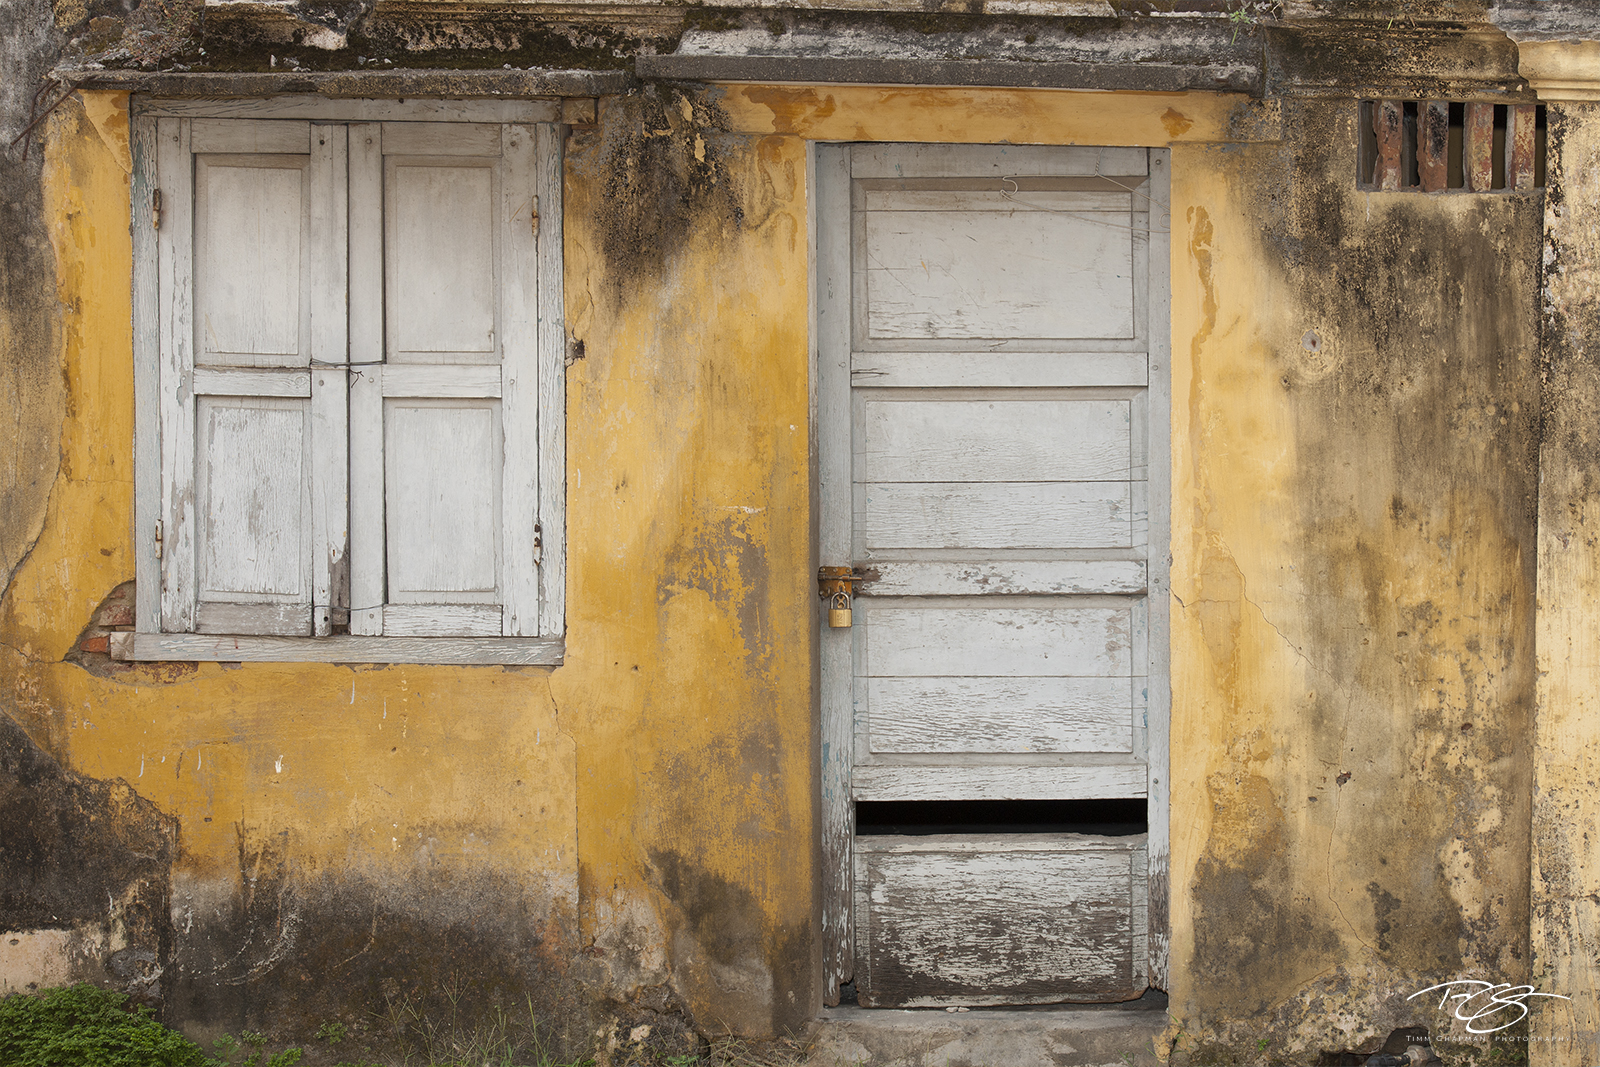 vietnam, door, window, yellow wall, shutters, hoi an, worn paint, peeling paint